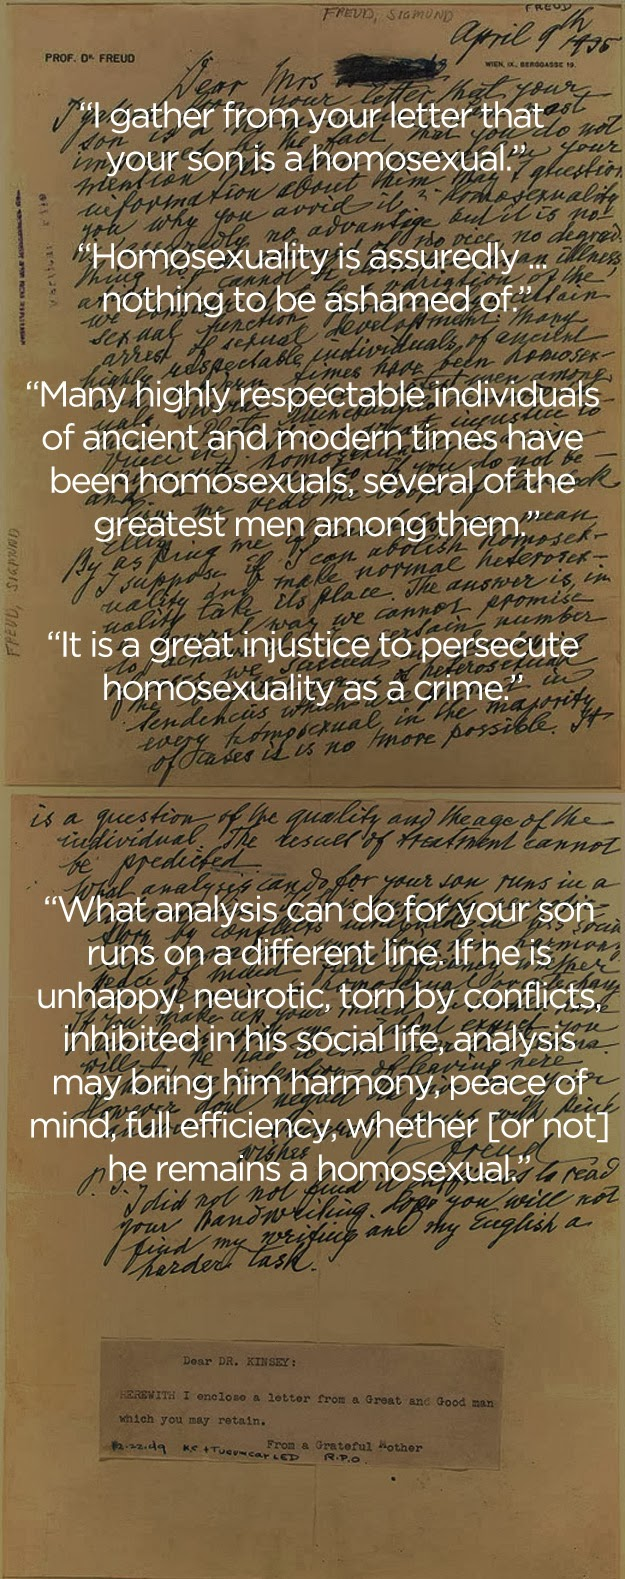 freud quotes sigmund freud on homosexuality sigmund freud on homosexuality